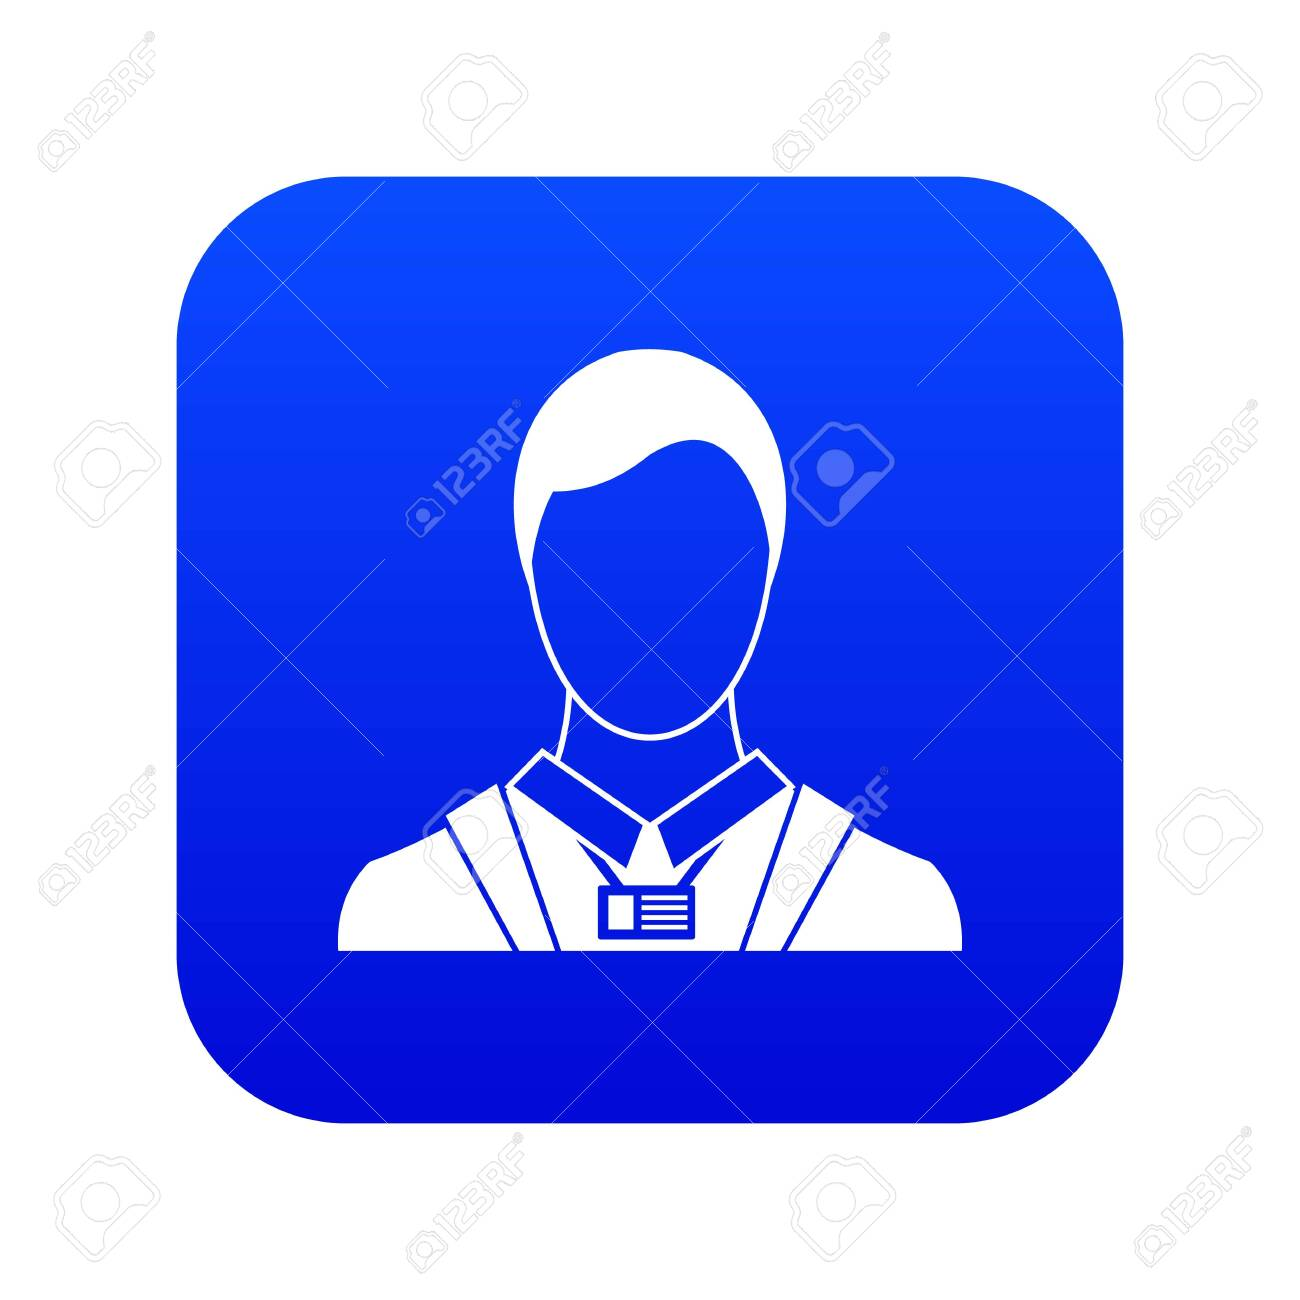 businessman with identity name card icon digital blue stock photo picture and royalty free image image 127754282 123rf com